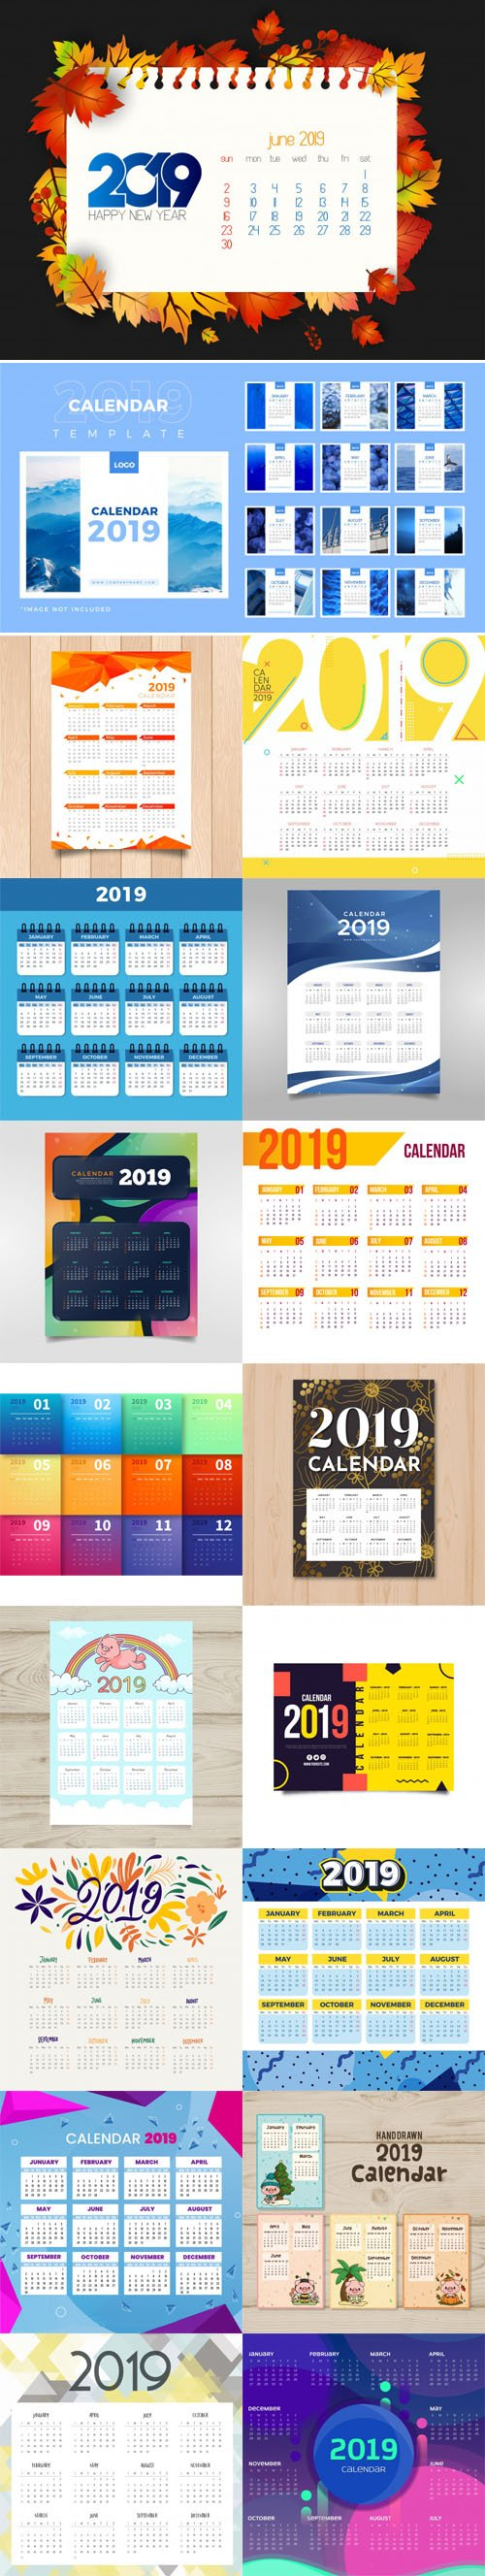 2019 Calendar Vector Templates Collection 5 [18 Calendars]